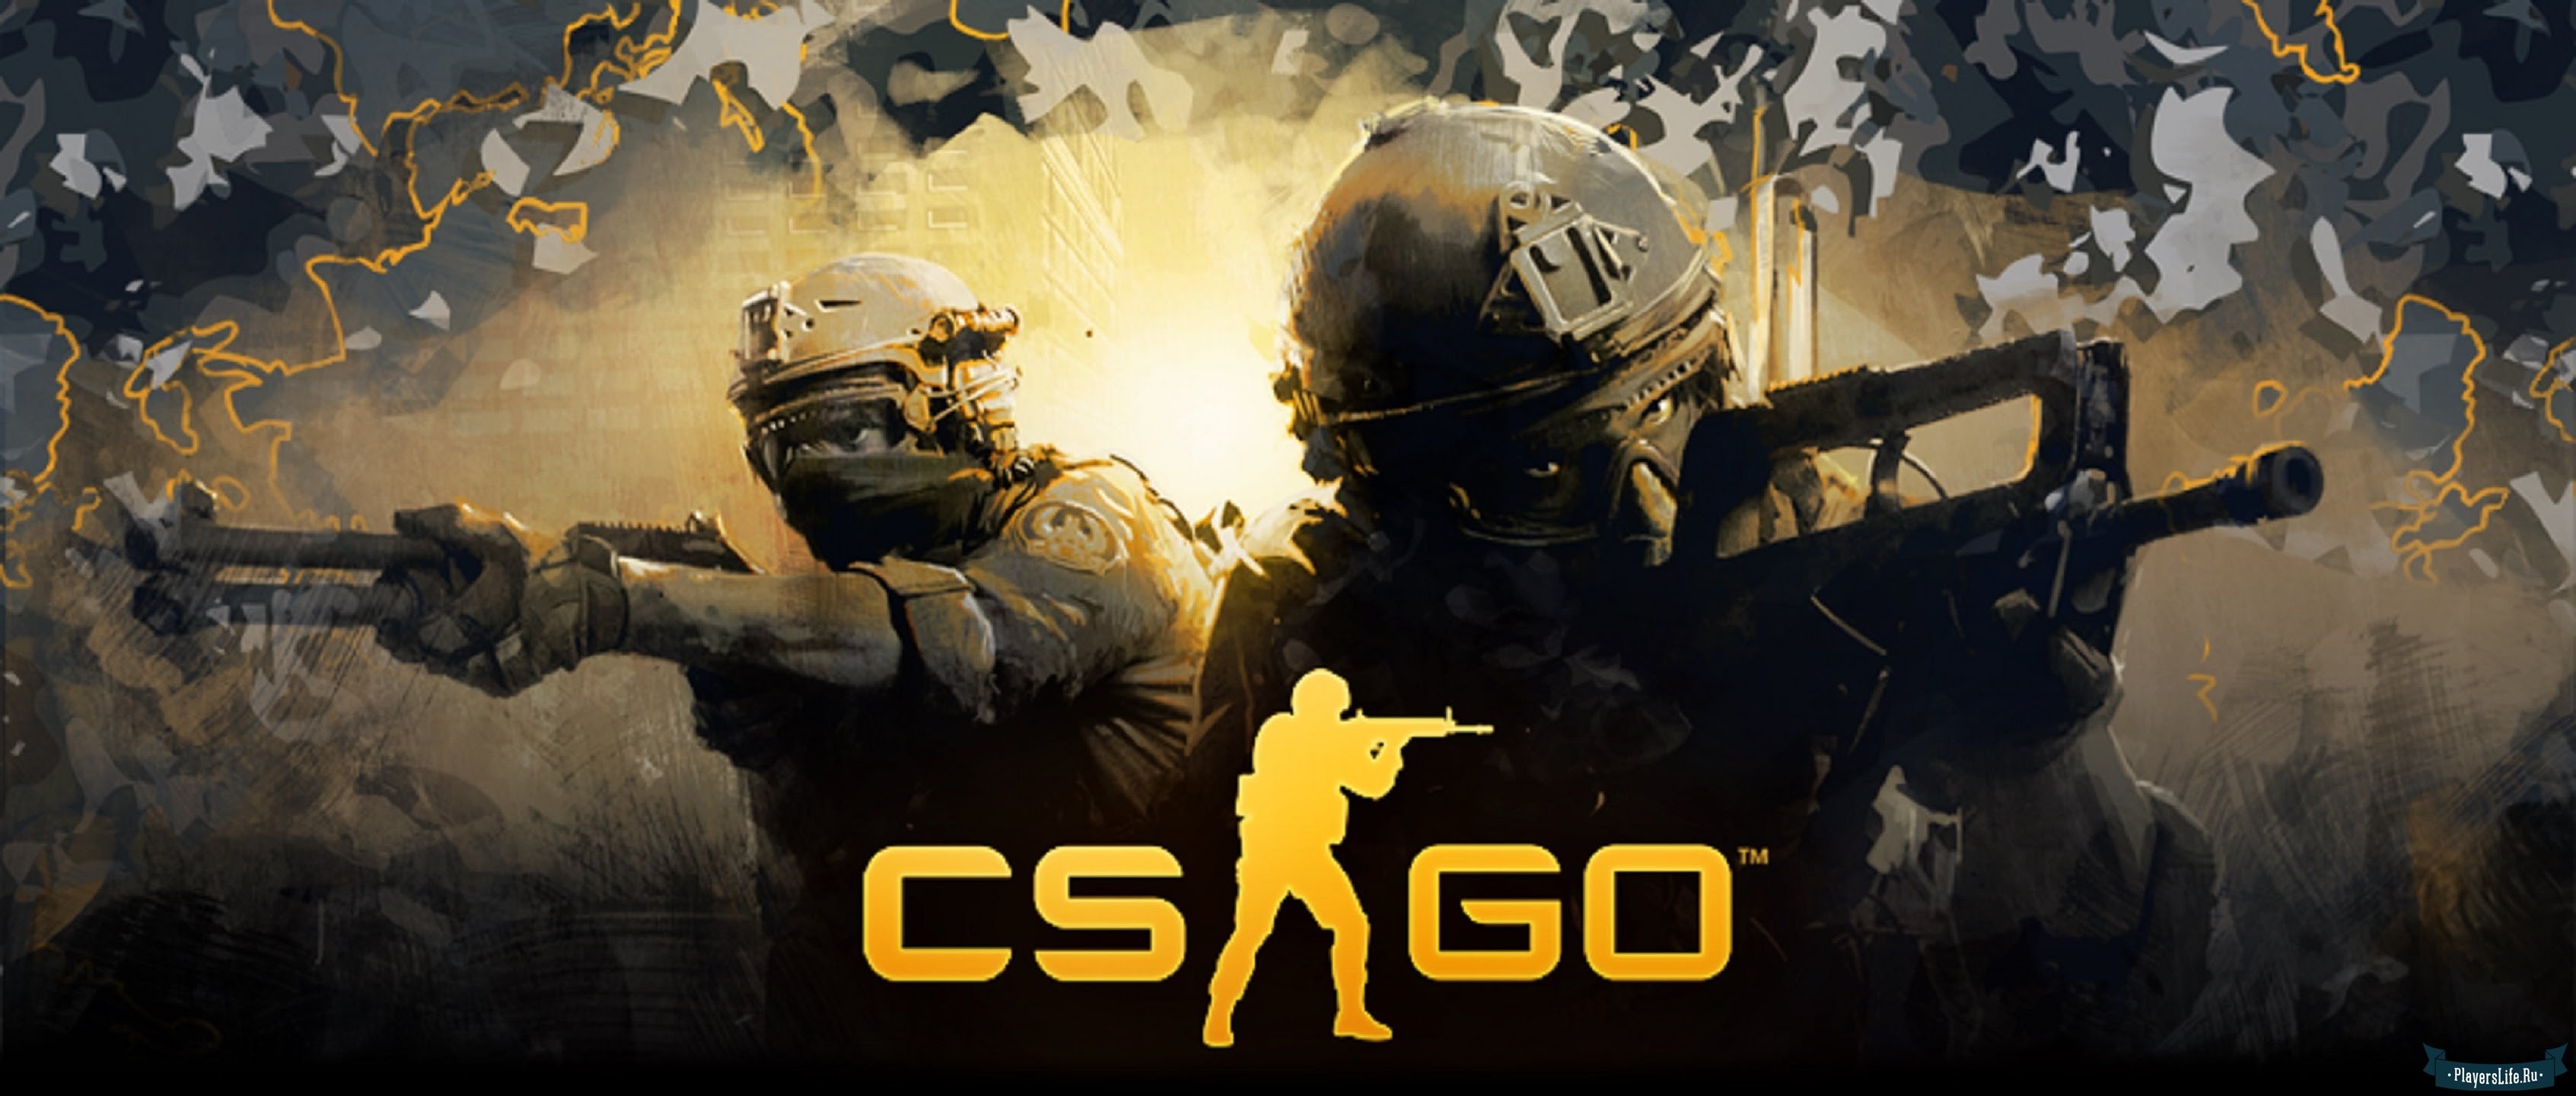 Prime - Counter strike: Global Offensive - Gold Nova